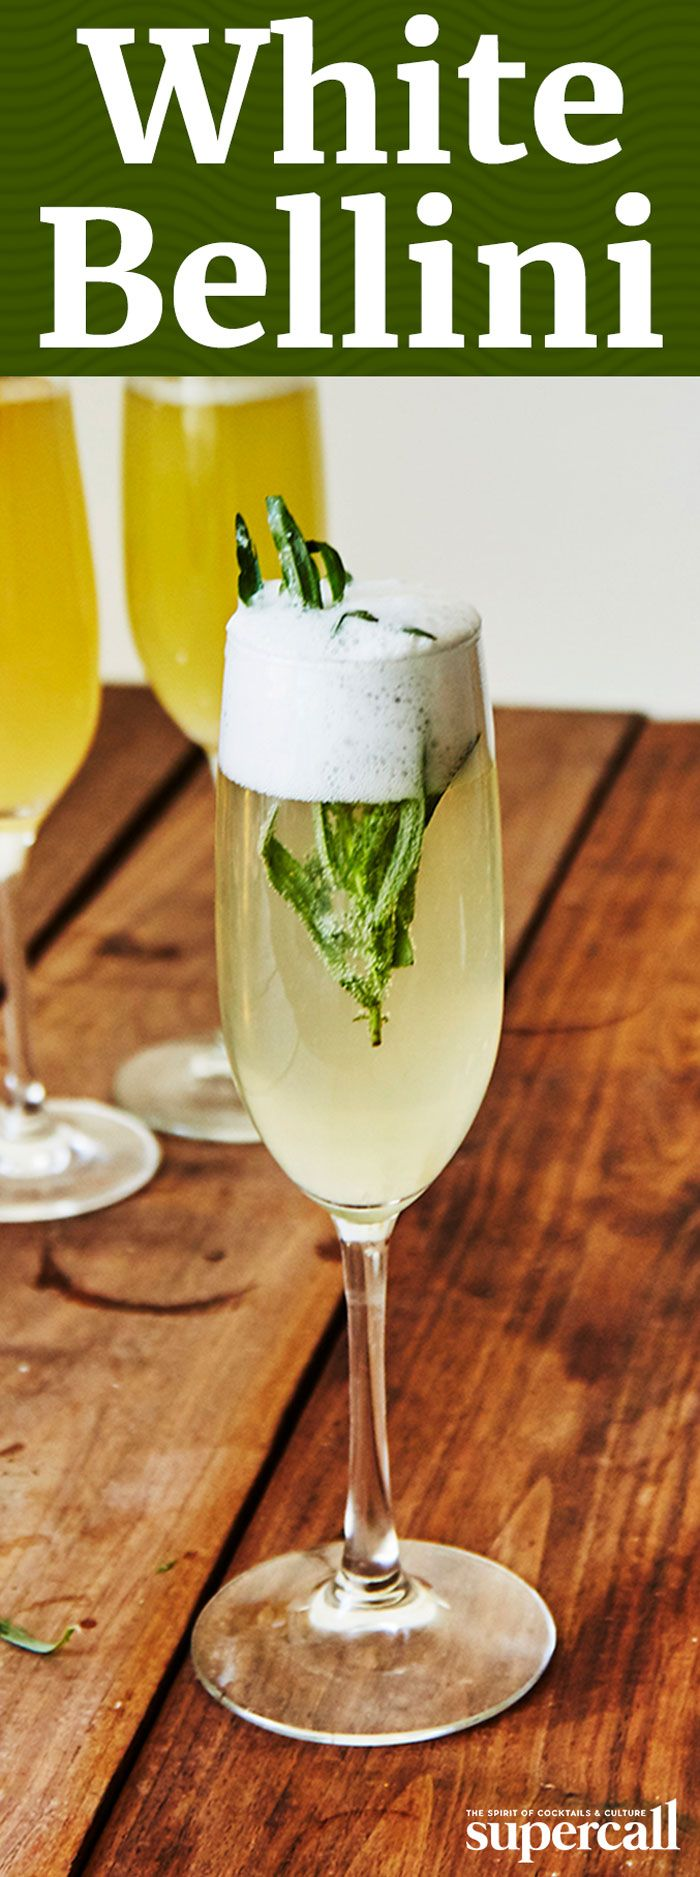 Inspired by the White Negroni, this effervescent brunch drink combines the bitter citrus flavors of gentian-based Suze aperitif with nectary sweet creme de peche, a clear, peach liqueur from France. The sprig of fresh tarragon as garnish not only adds a fragrant bouquet to every sip, it elevates this Bellini to savory new heights, making it extremely food-friendly.